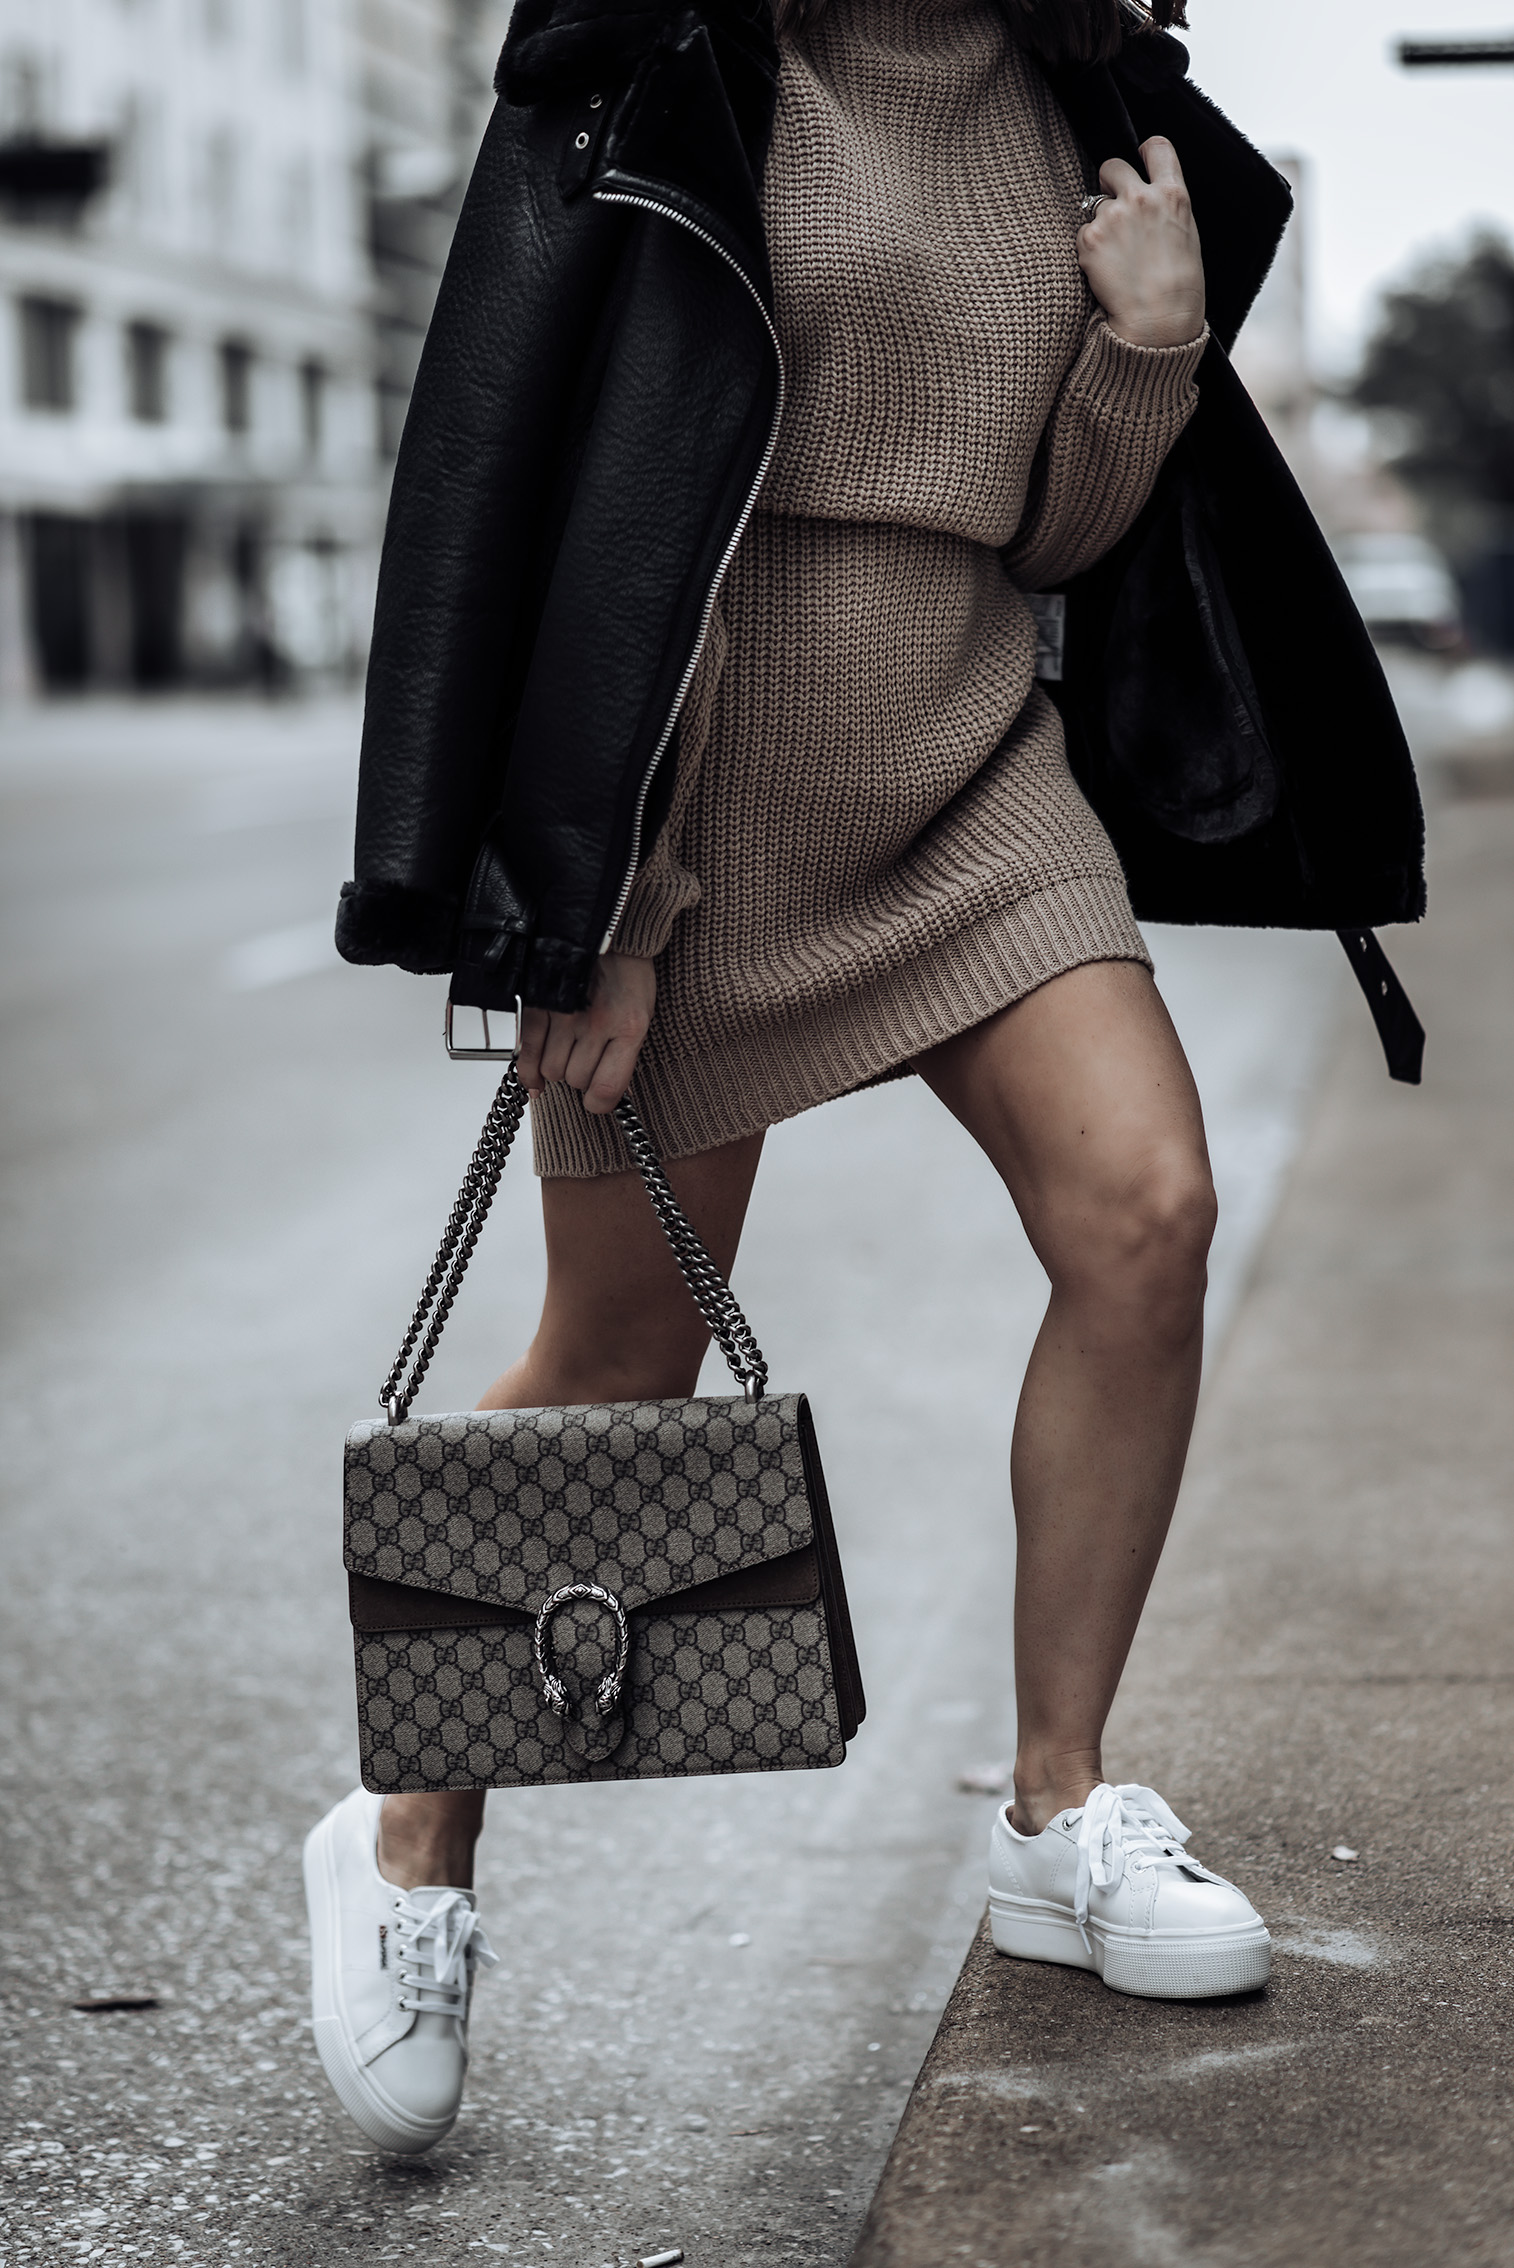 Transitioning into spring |Iffy Stone Oversized Cable Knit Sweater Dress | 2790 Platform Sneakers | Dionysus GG Bag | Oversized Biker Jacket | #sweaterdresss #liketkit #rewardstyle #streetstyle2018